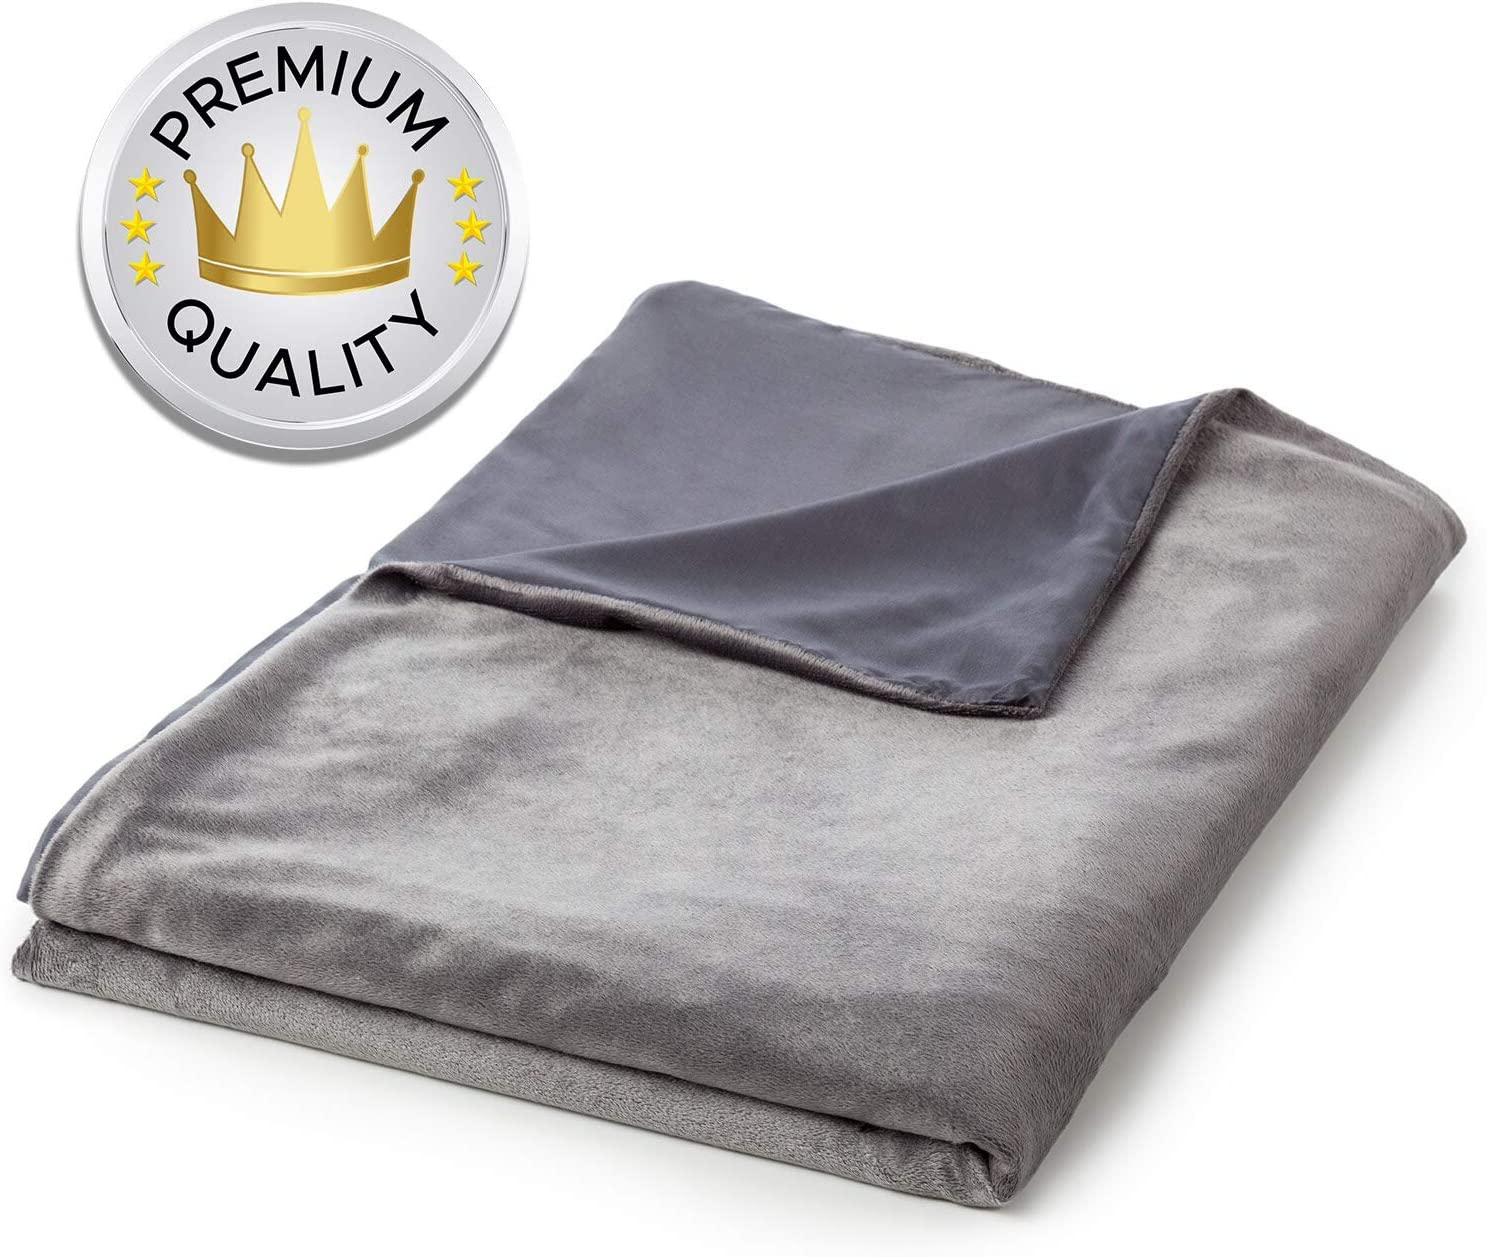 Snuggle Pro Reversible Duvet Cover for Weighted Blankets - 48 x 72 Inches Twin Size - All Season Cooling Bamboo and Soft Minky - Removable and Machine Washable - Grey